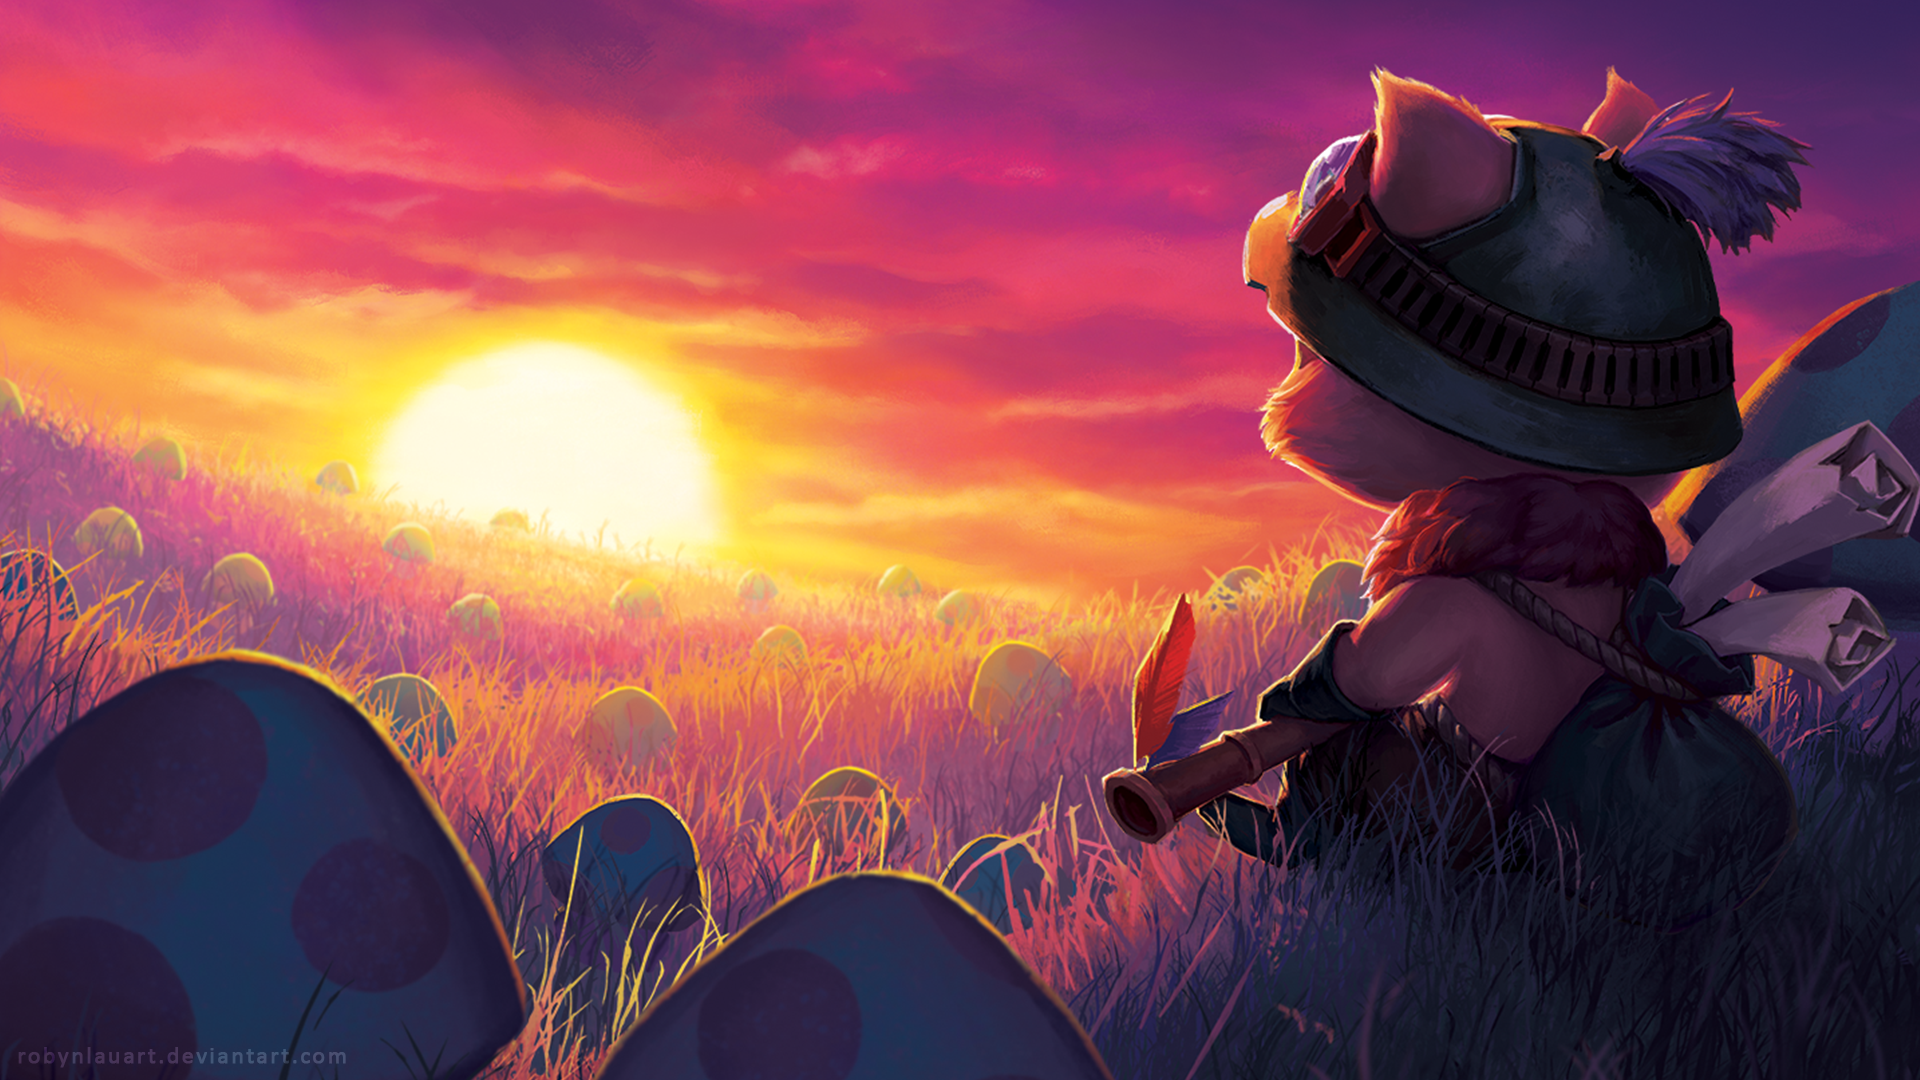 teemo in the sunset full hd wallpaper and background image